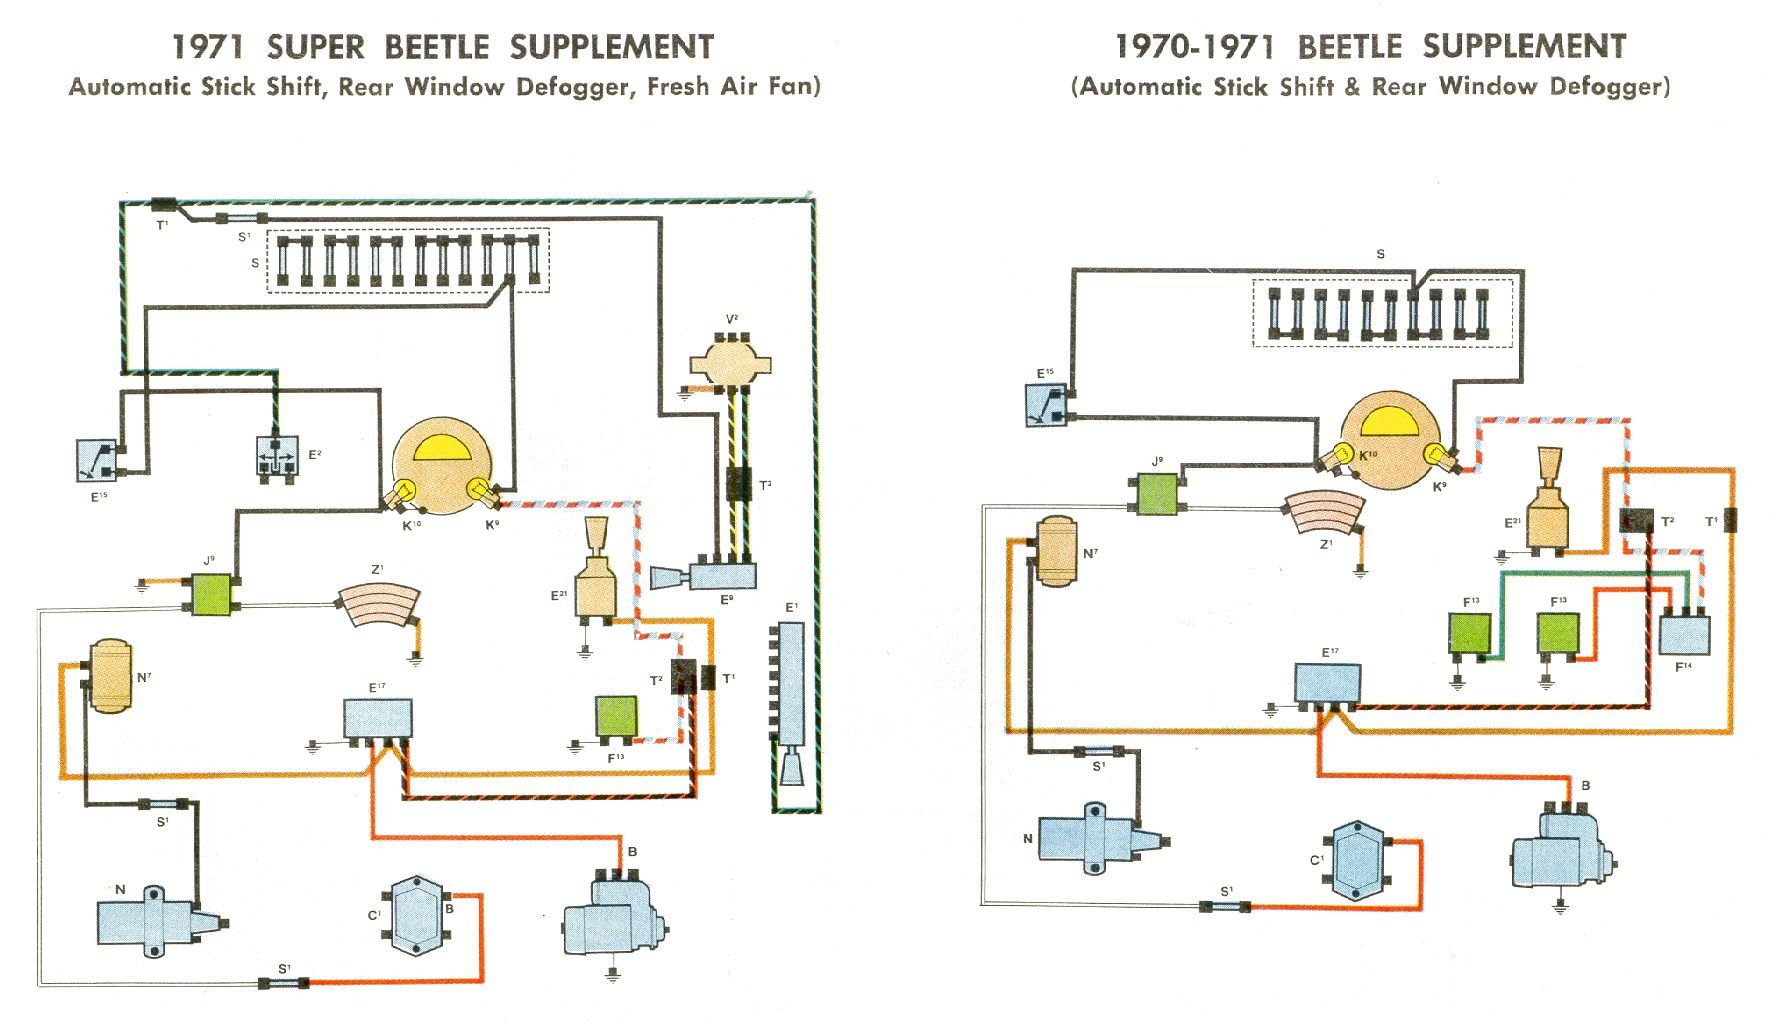 bug_7071_supplement 69 vw bug wiring diagram 1970 vw beetle wiring \u2022 wiring diagrams 1973 vw beetle fuse box diagram at crackthecode.co